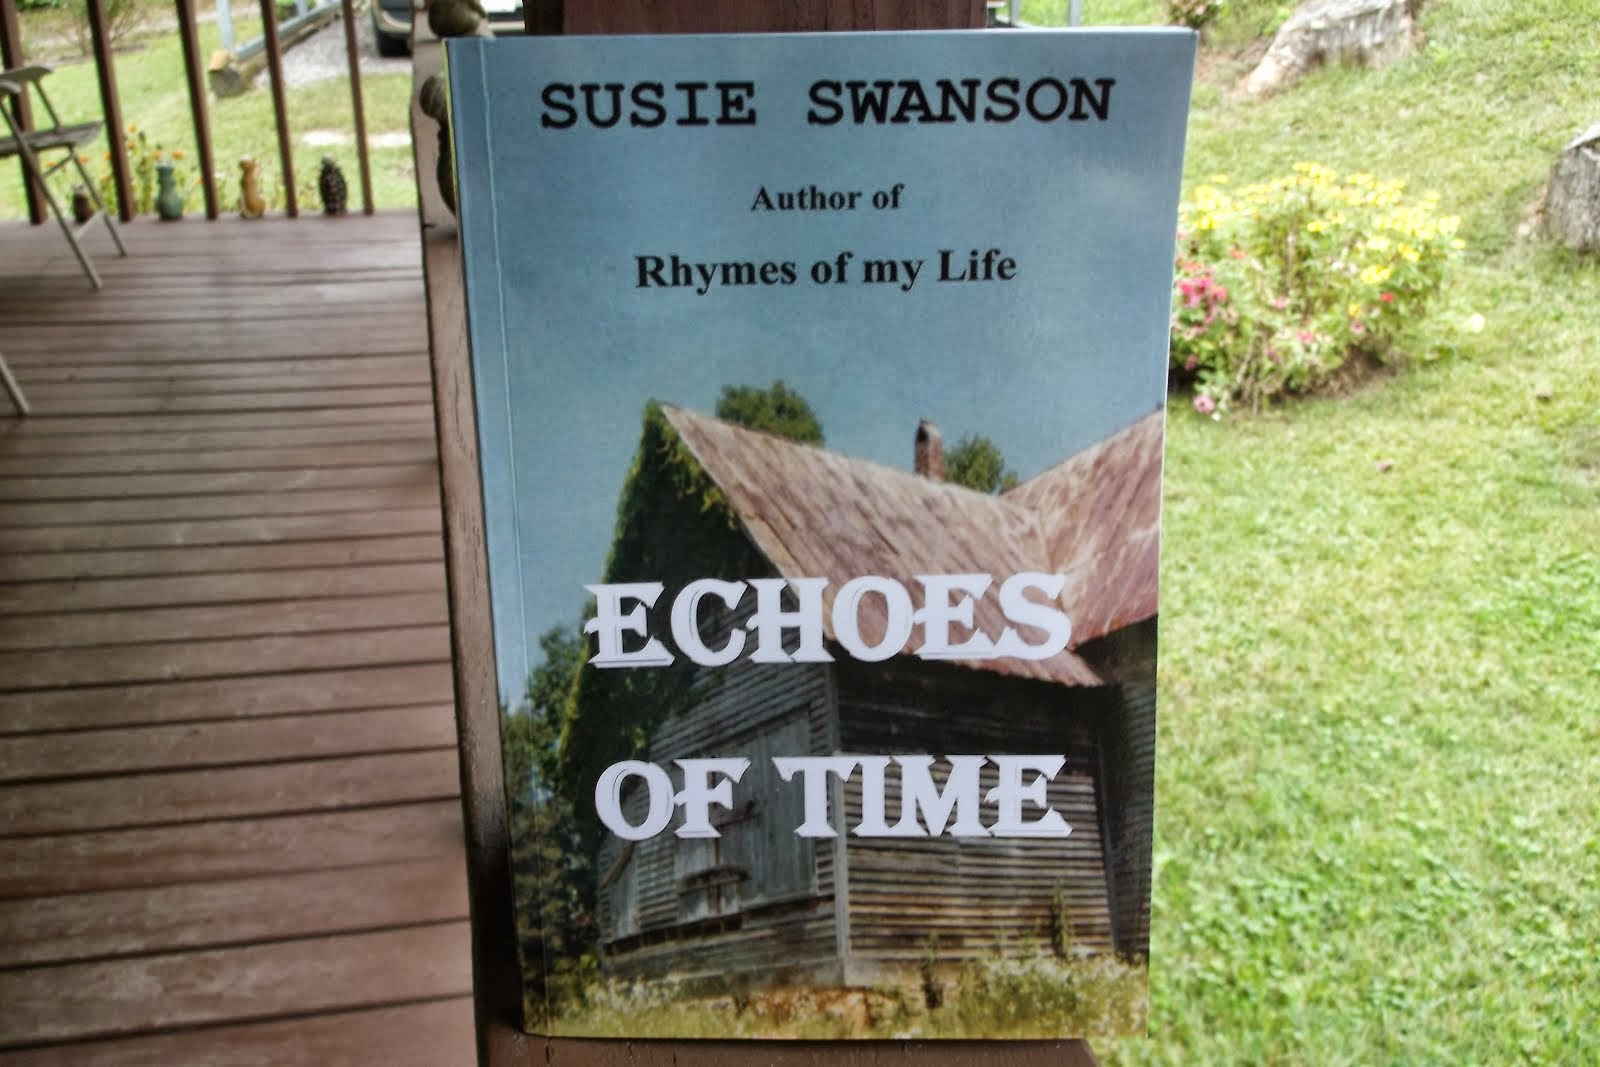 If you would like a copy of my new Book Echoes Of Time send a check, money order or cash for 16.00